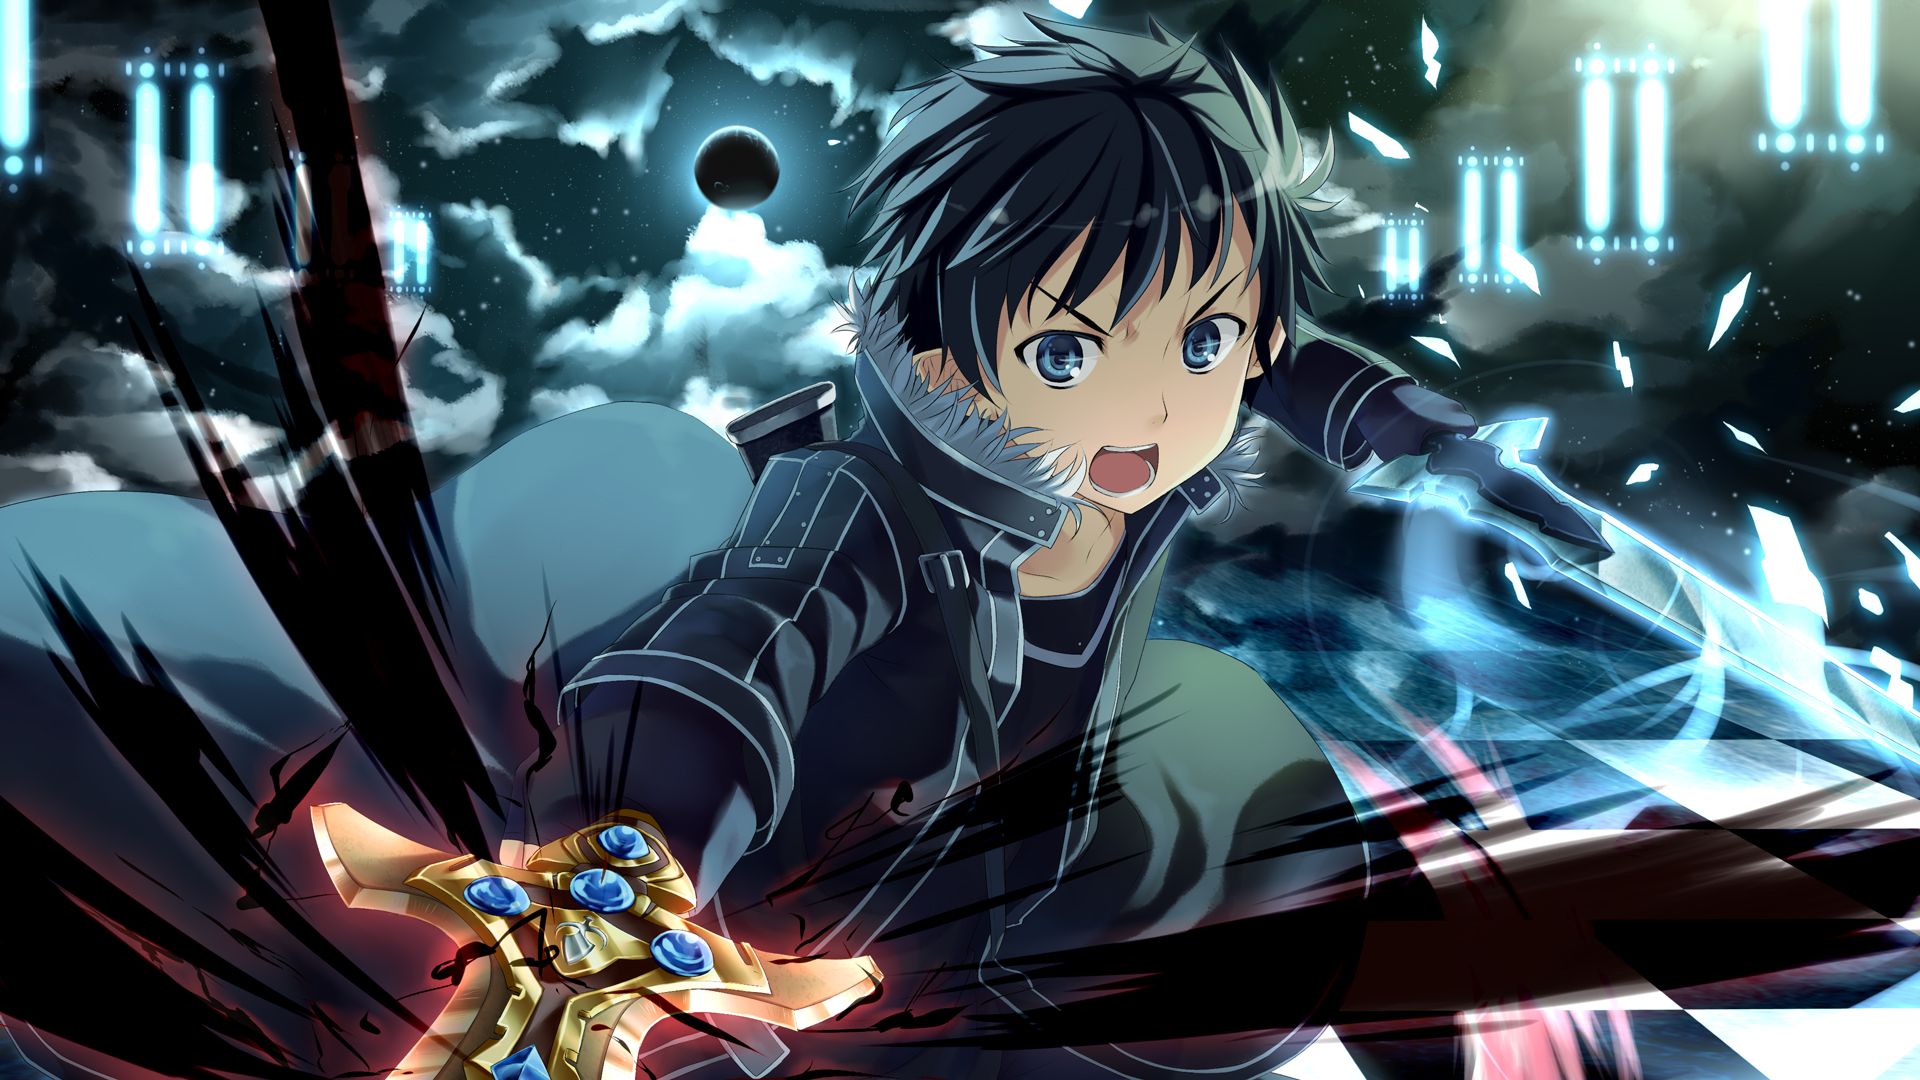 1000+ Images About Sword Art Online